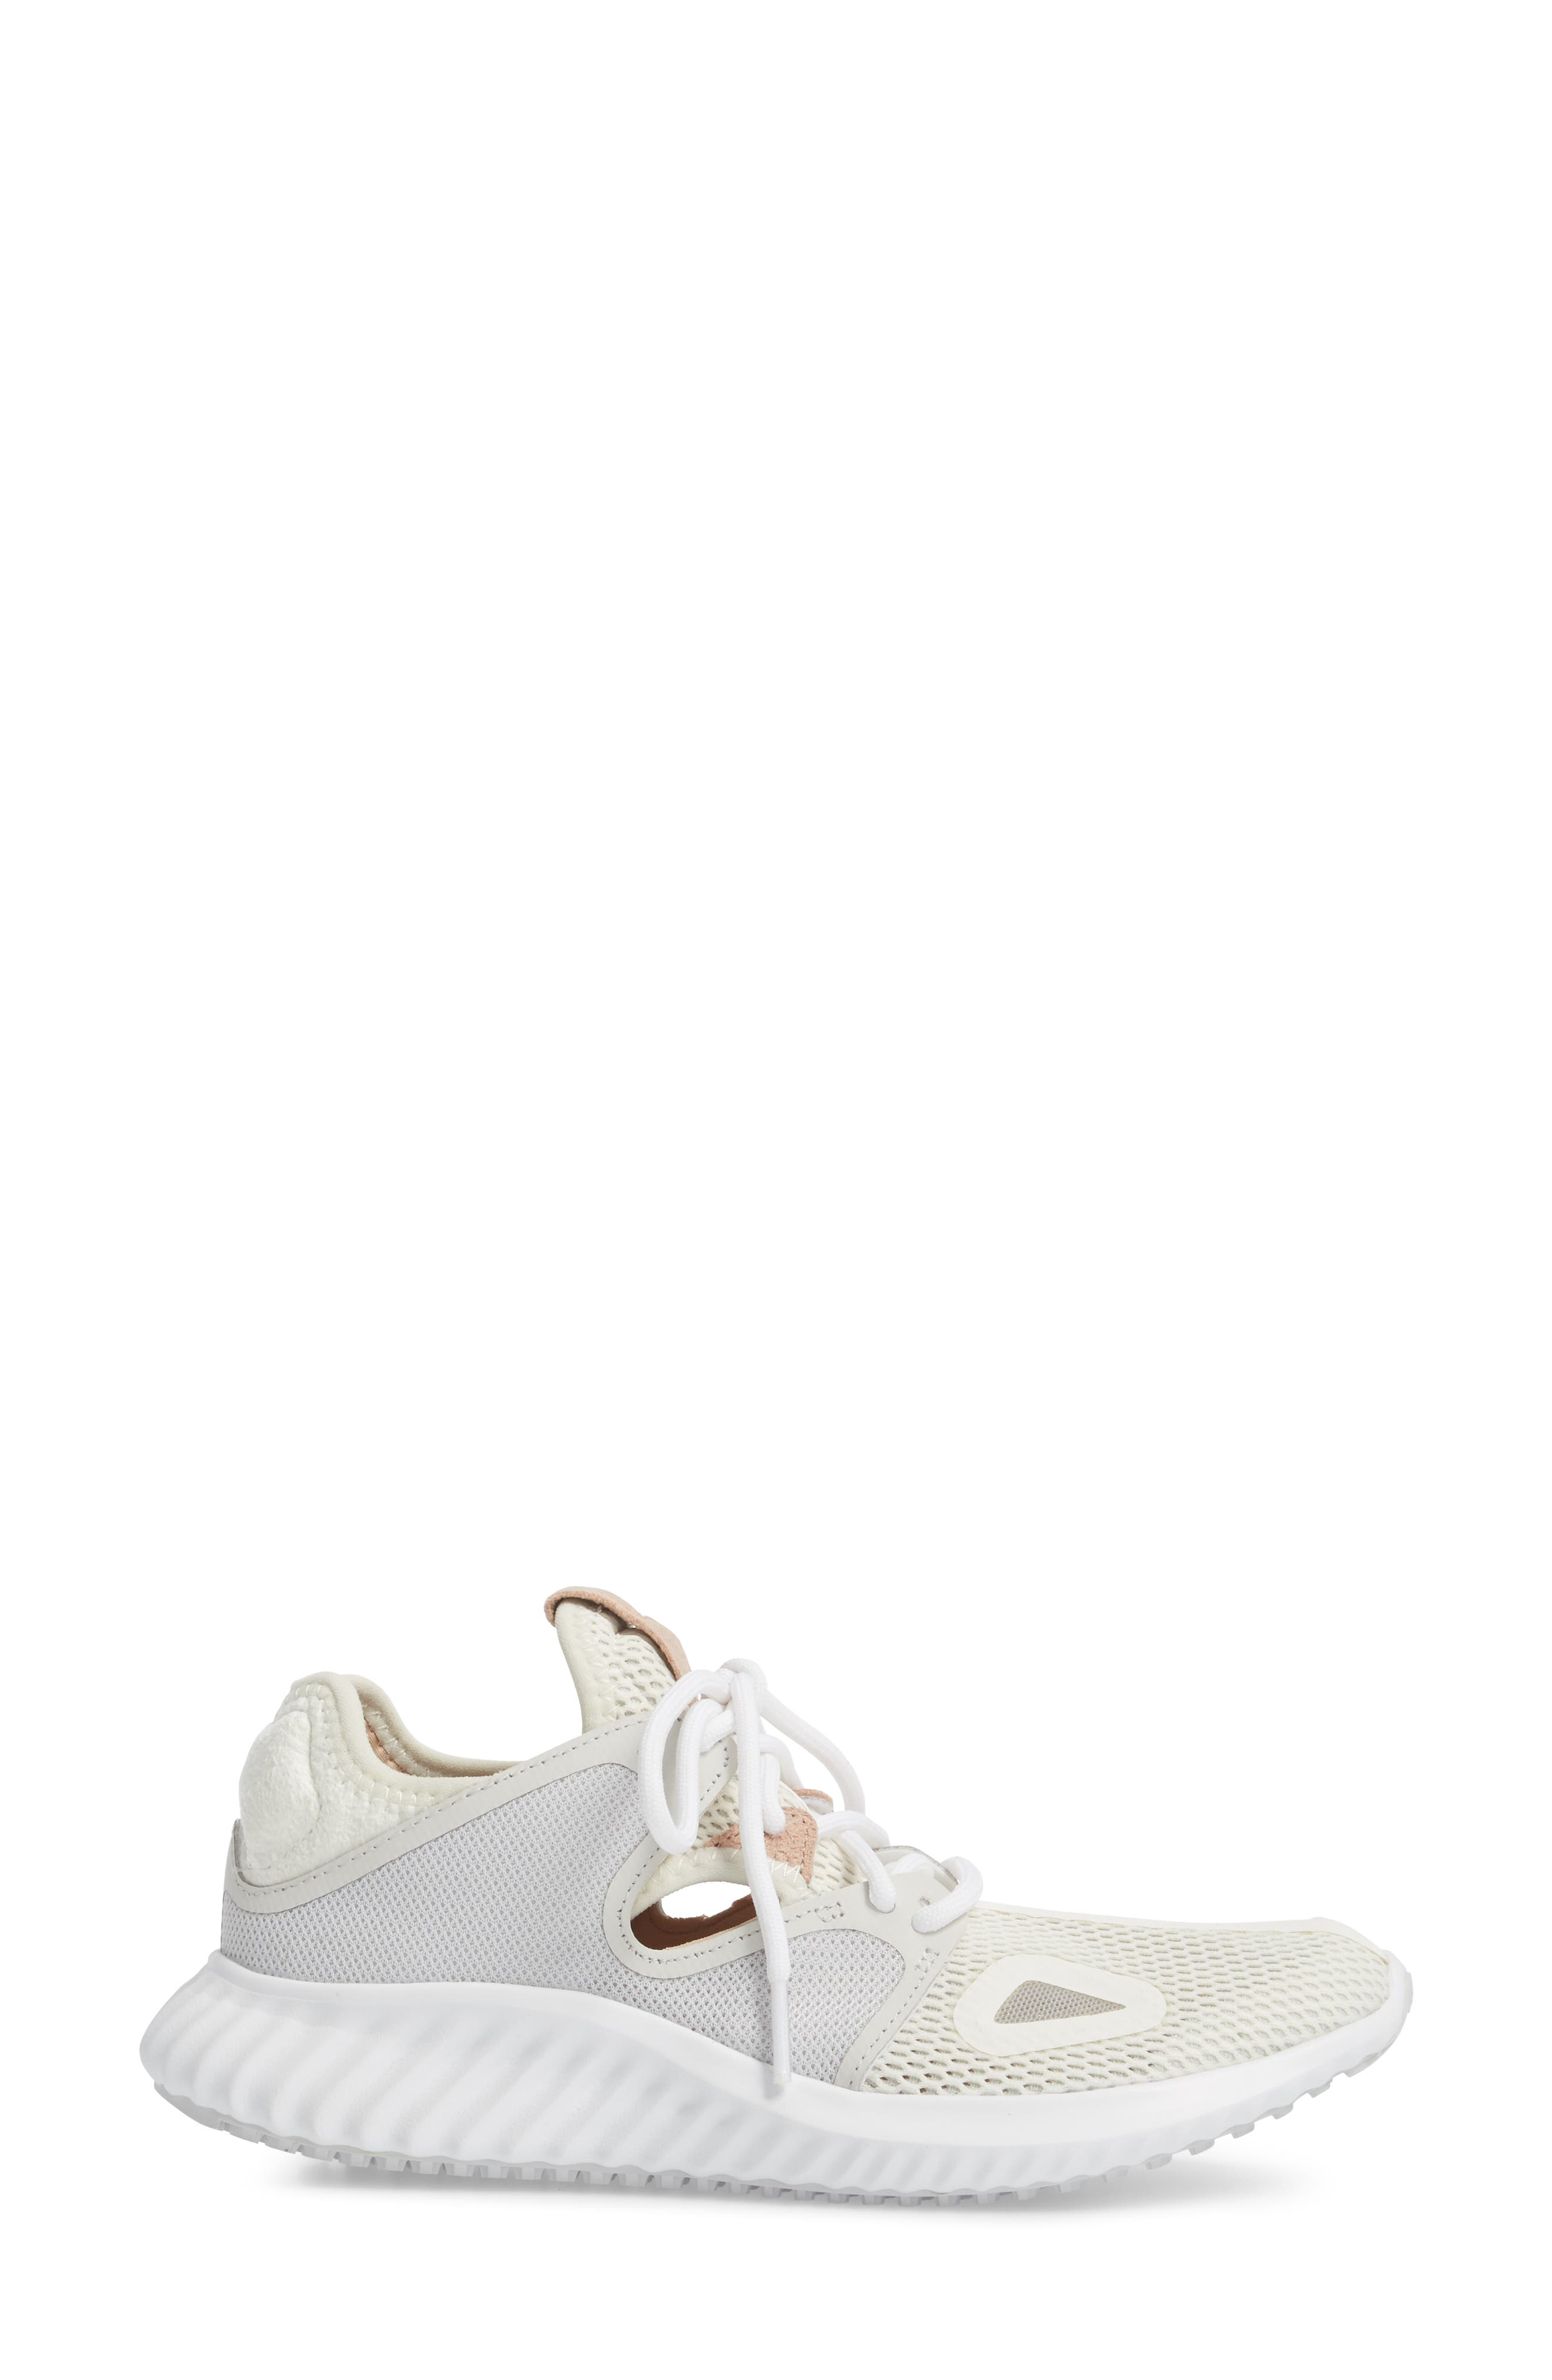 Run Lux Clima Running Shoe,                             Alternate thumbnail 3, color,                             Off White / Grey